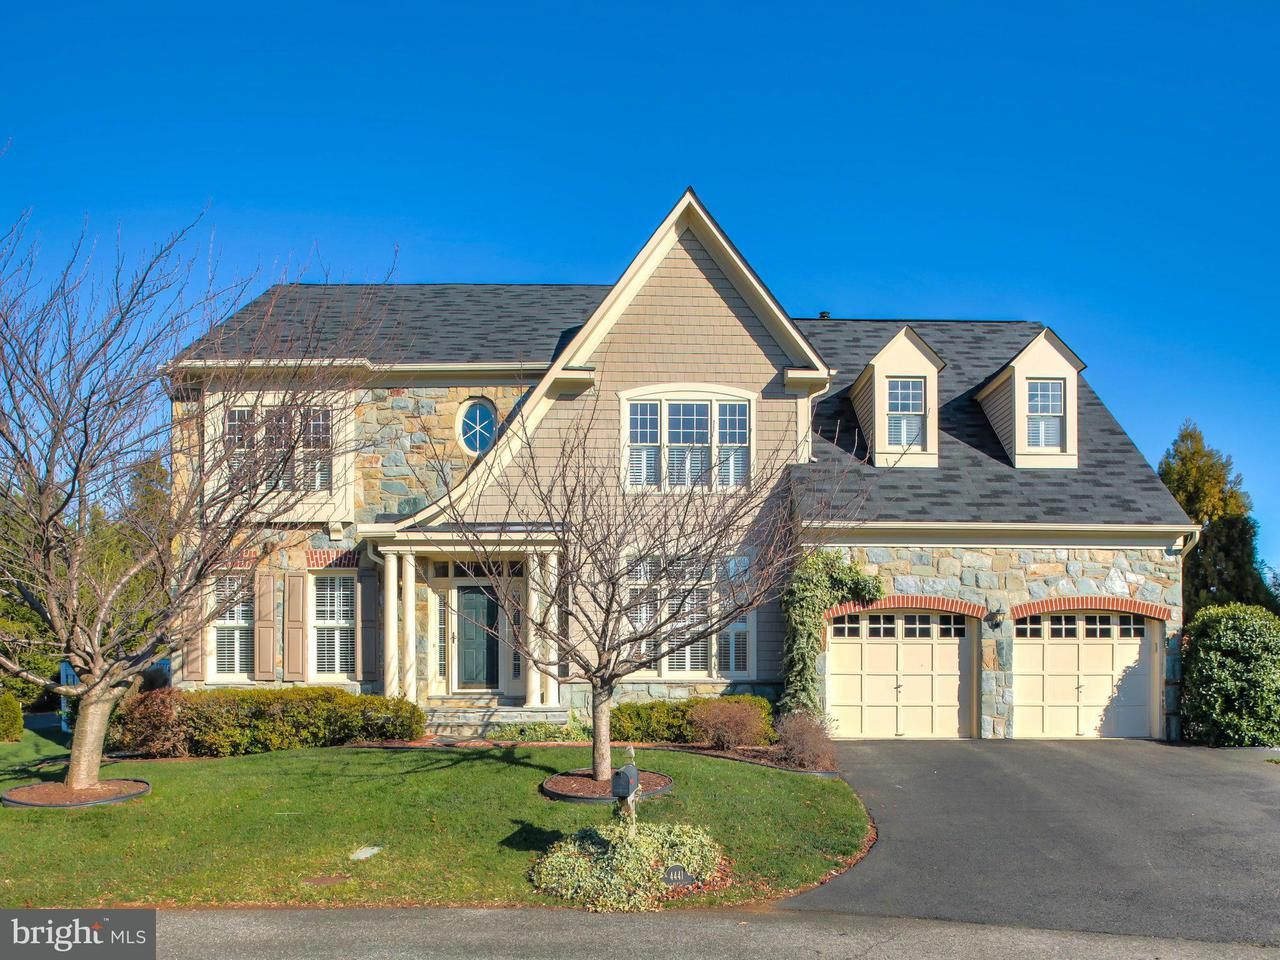 Single Family Home for Sale at 4441 BURNT PINE Court 4441 BURNT PINE Court Alexandria, Virginia 22312 United States